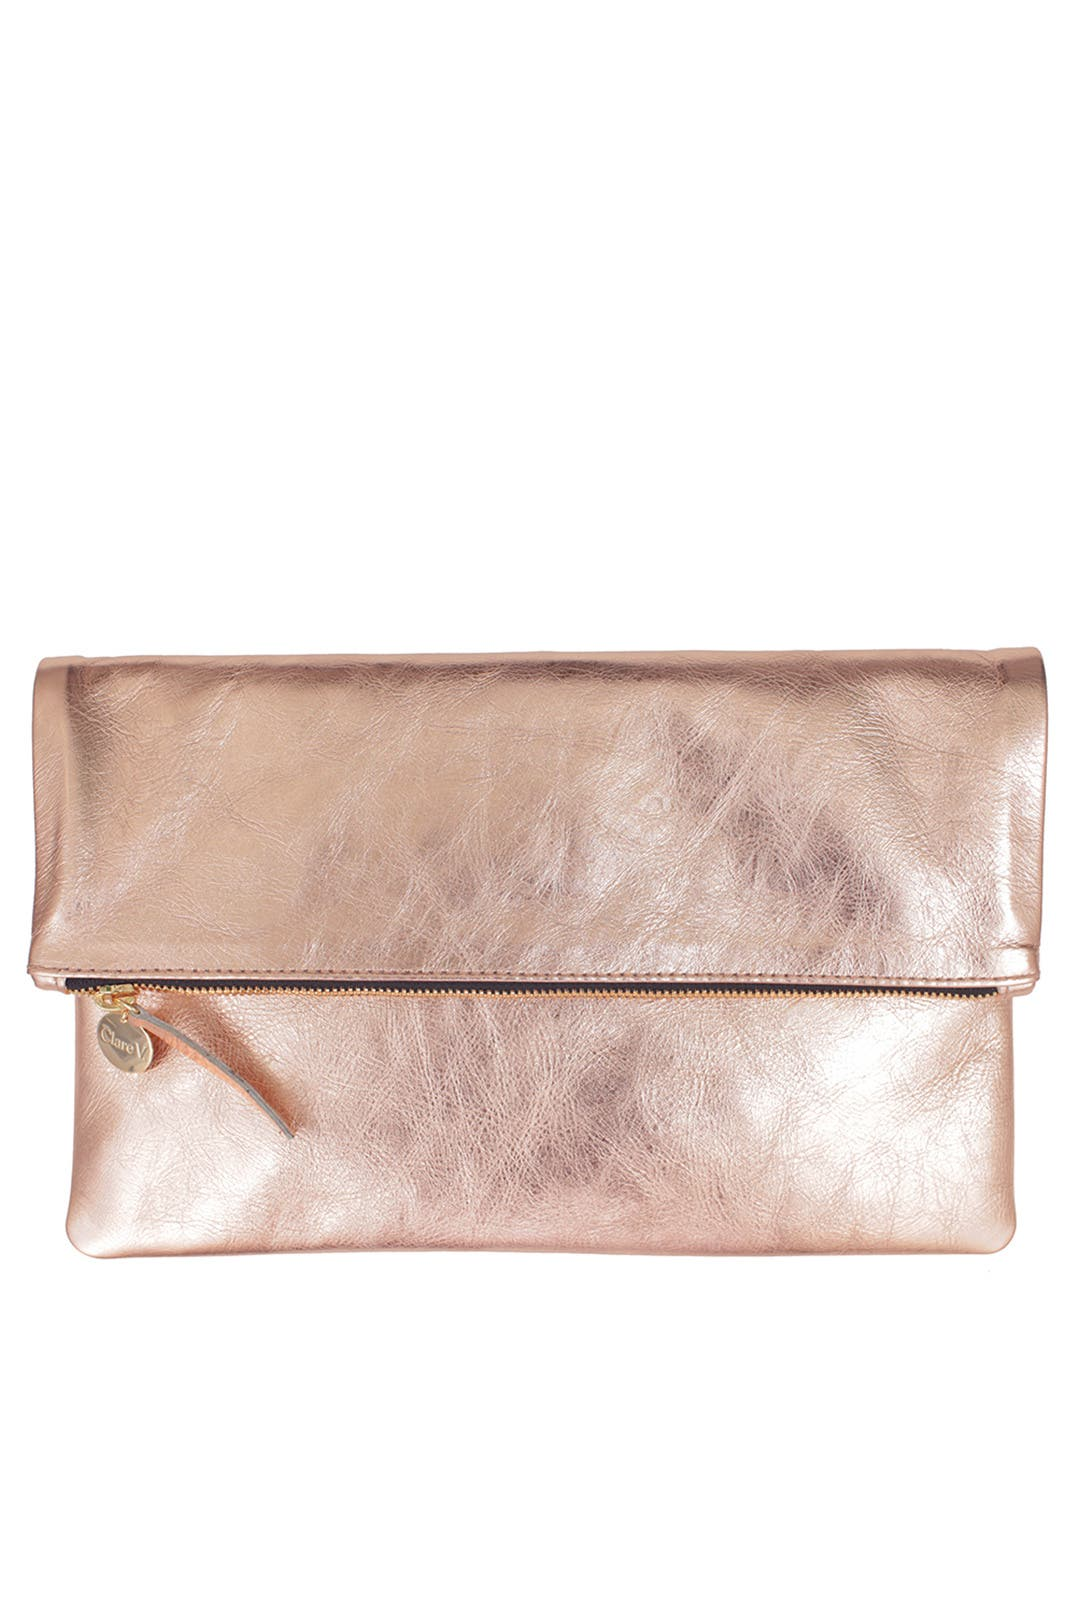 Rose Foldover Clutch By Clare V For 194 Rent The Runway